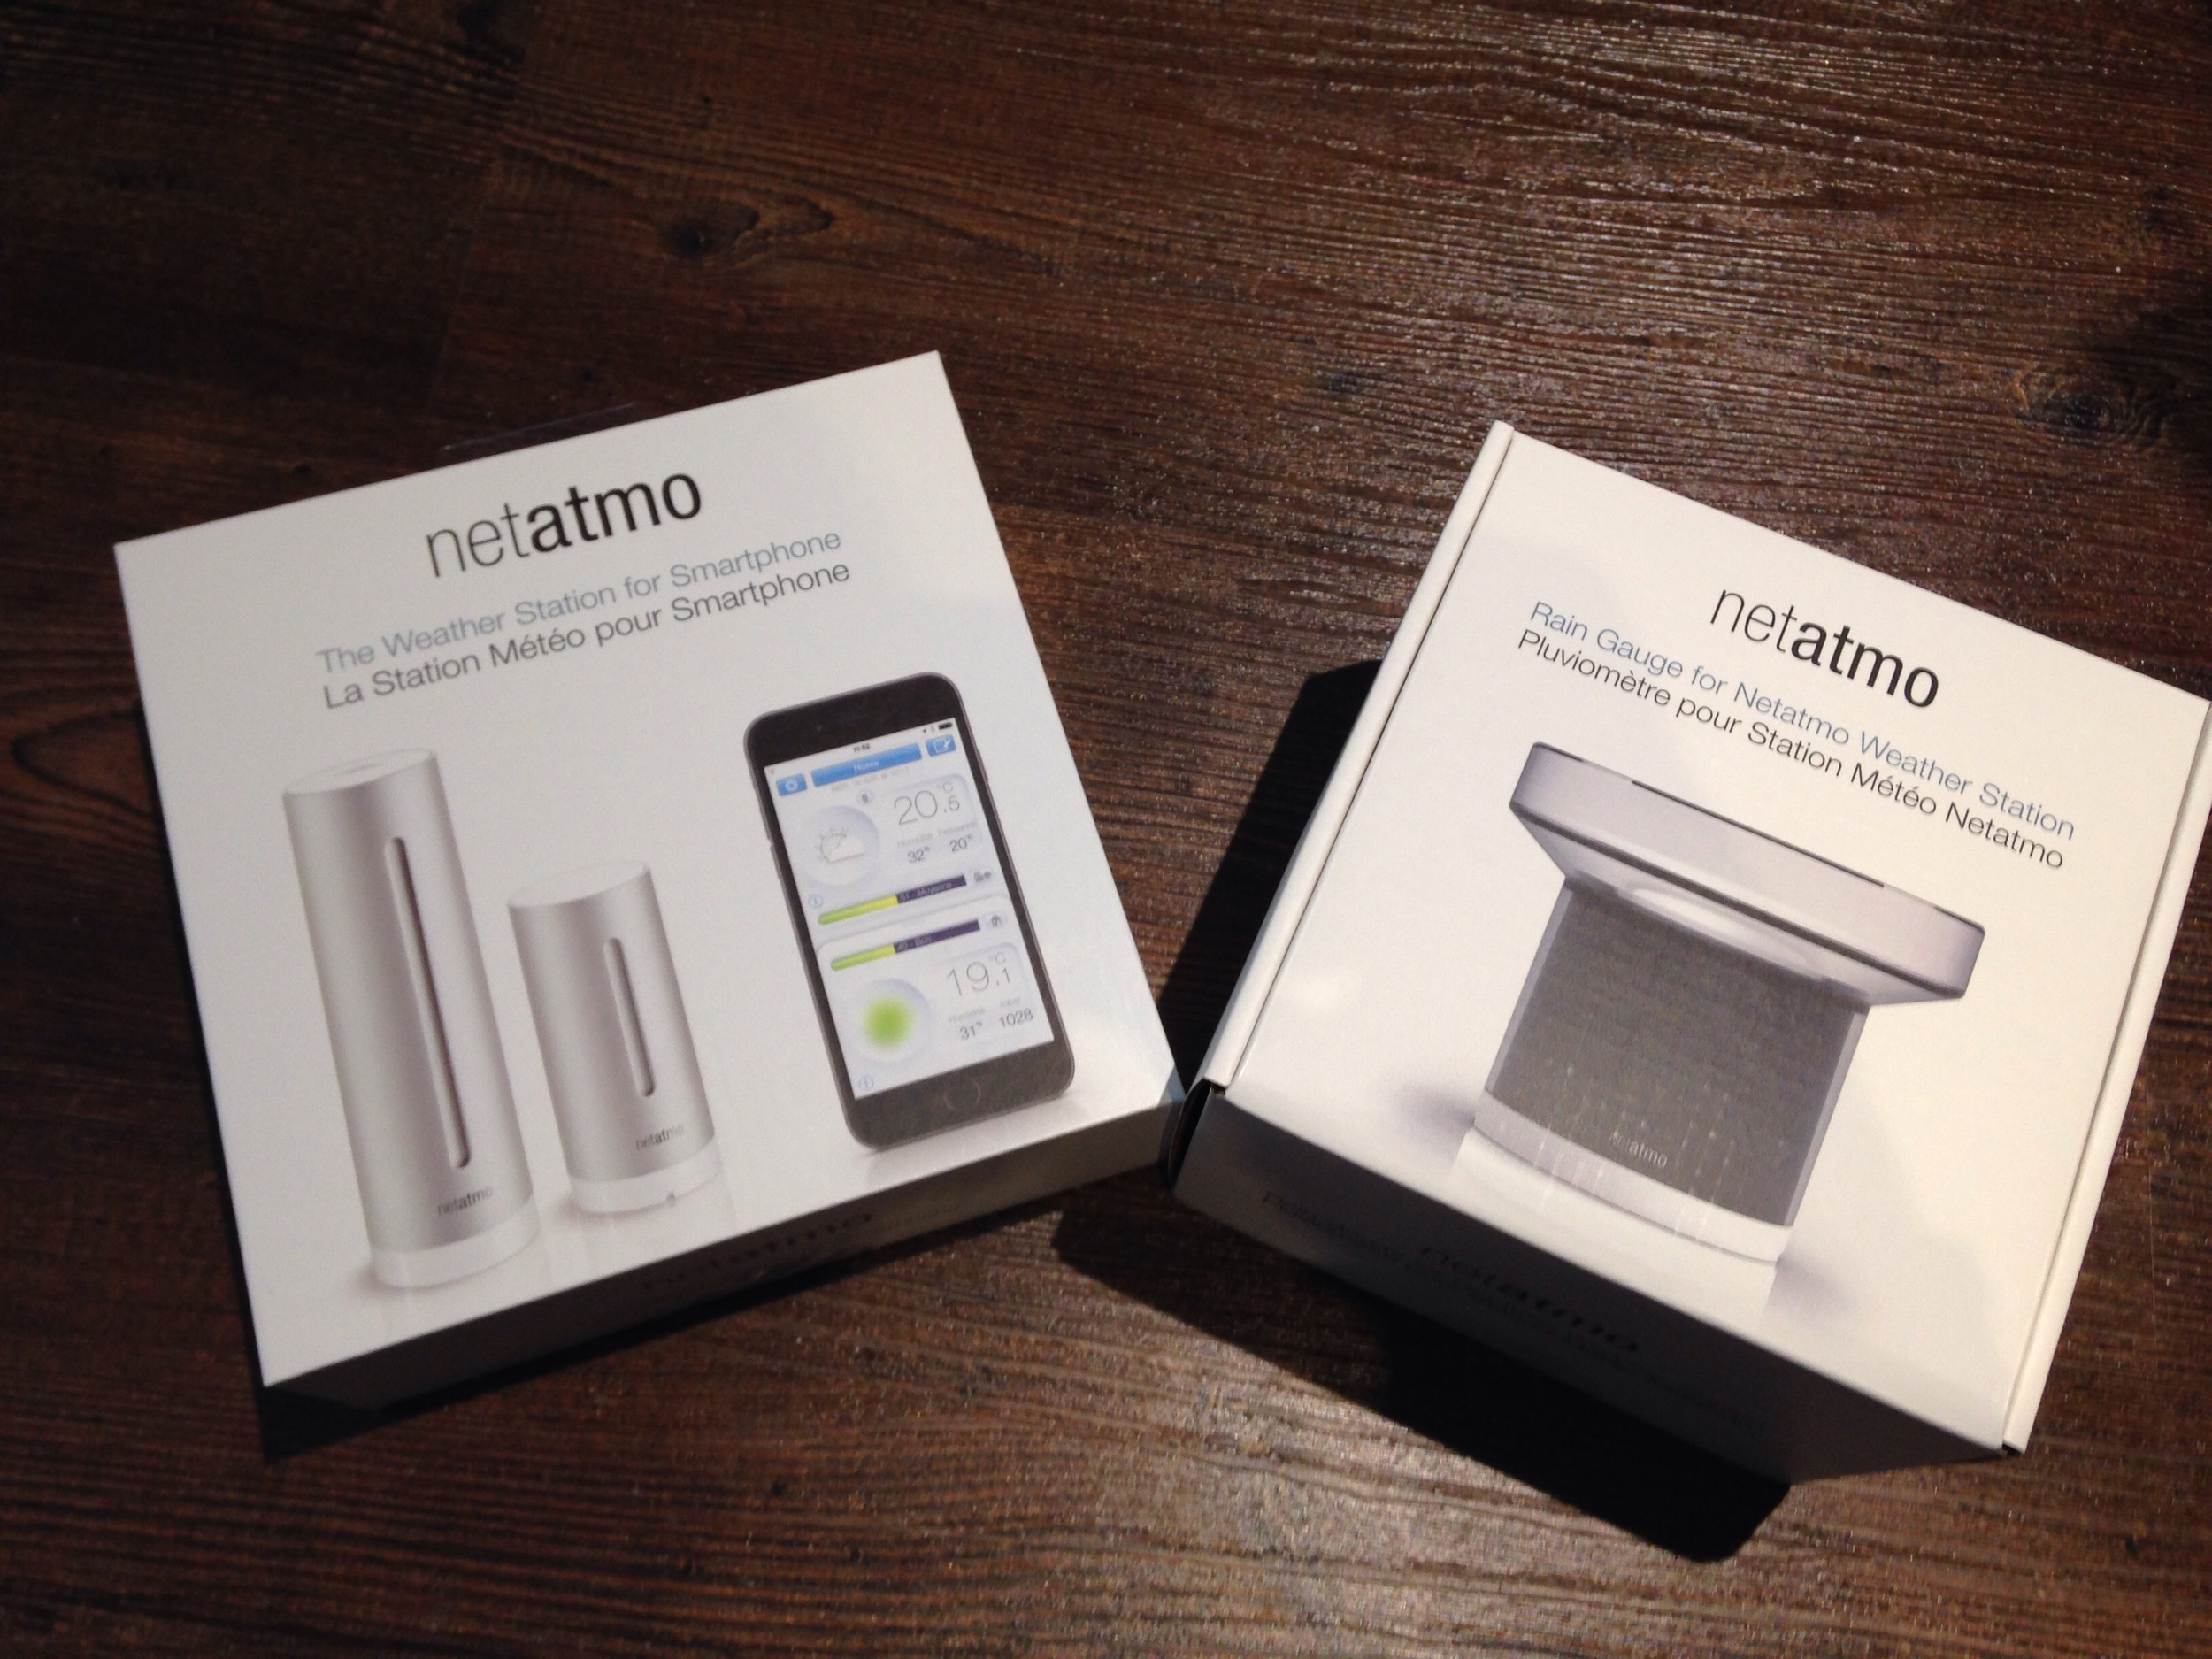 Netatmo internet connected weather station.